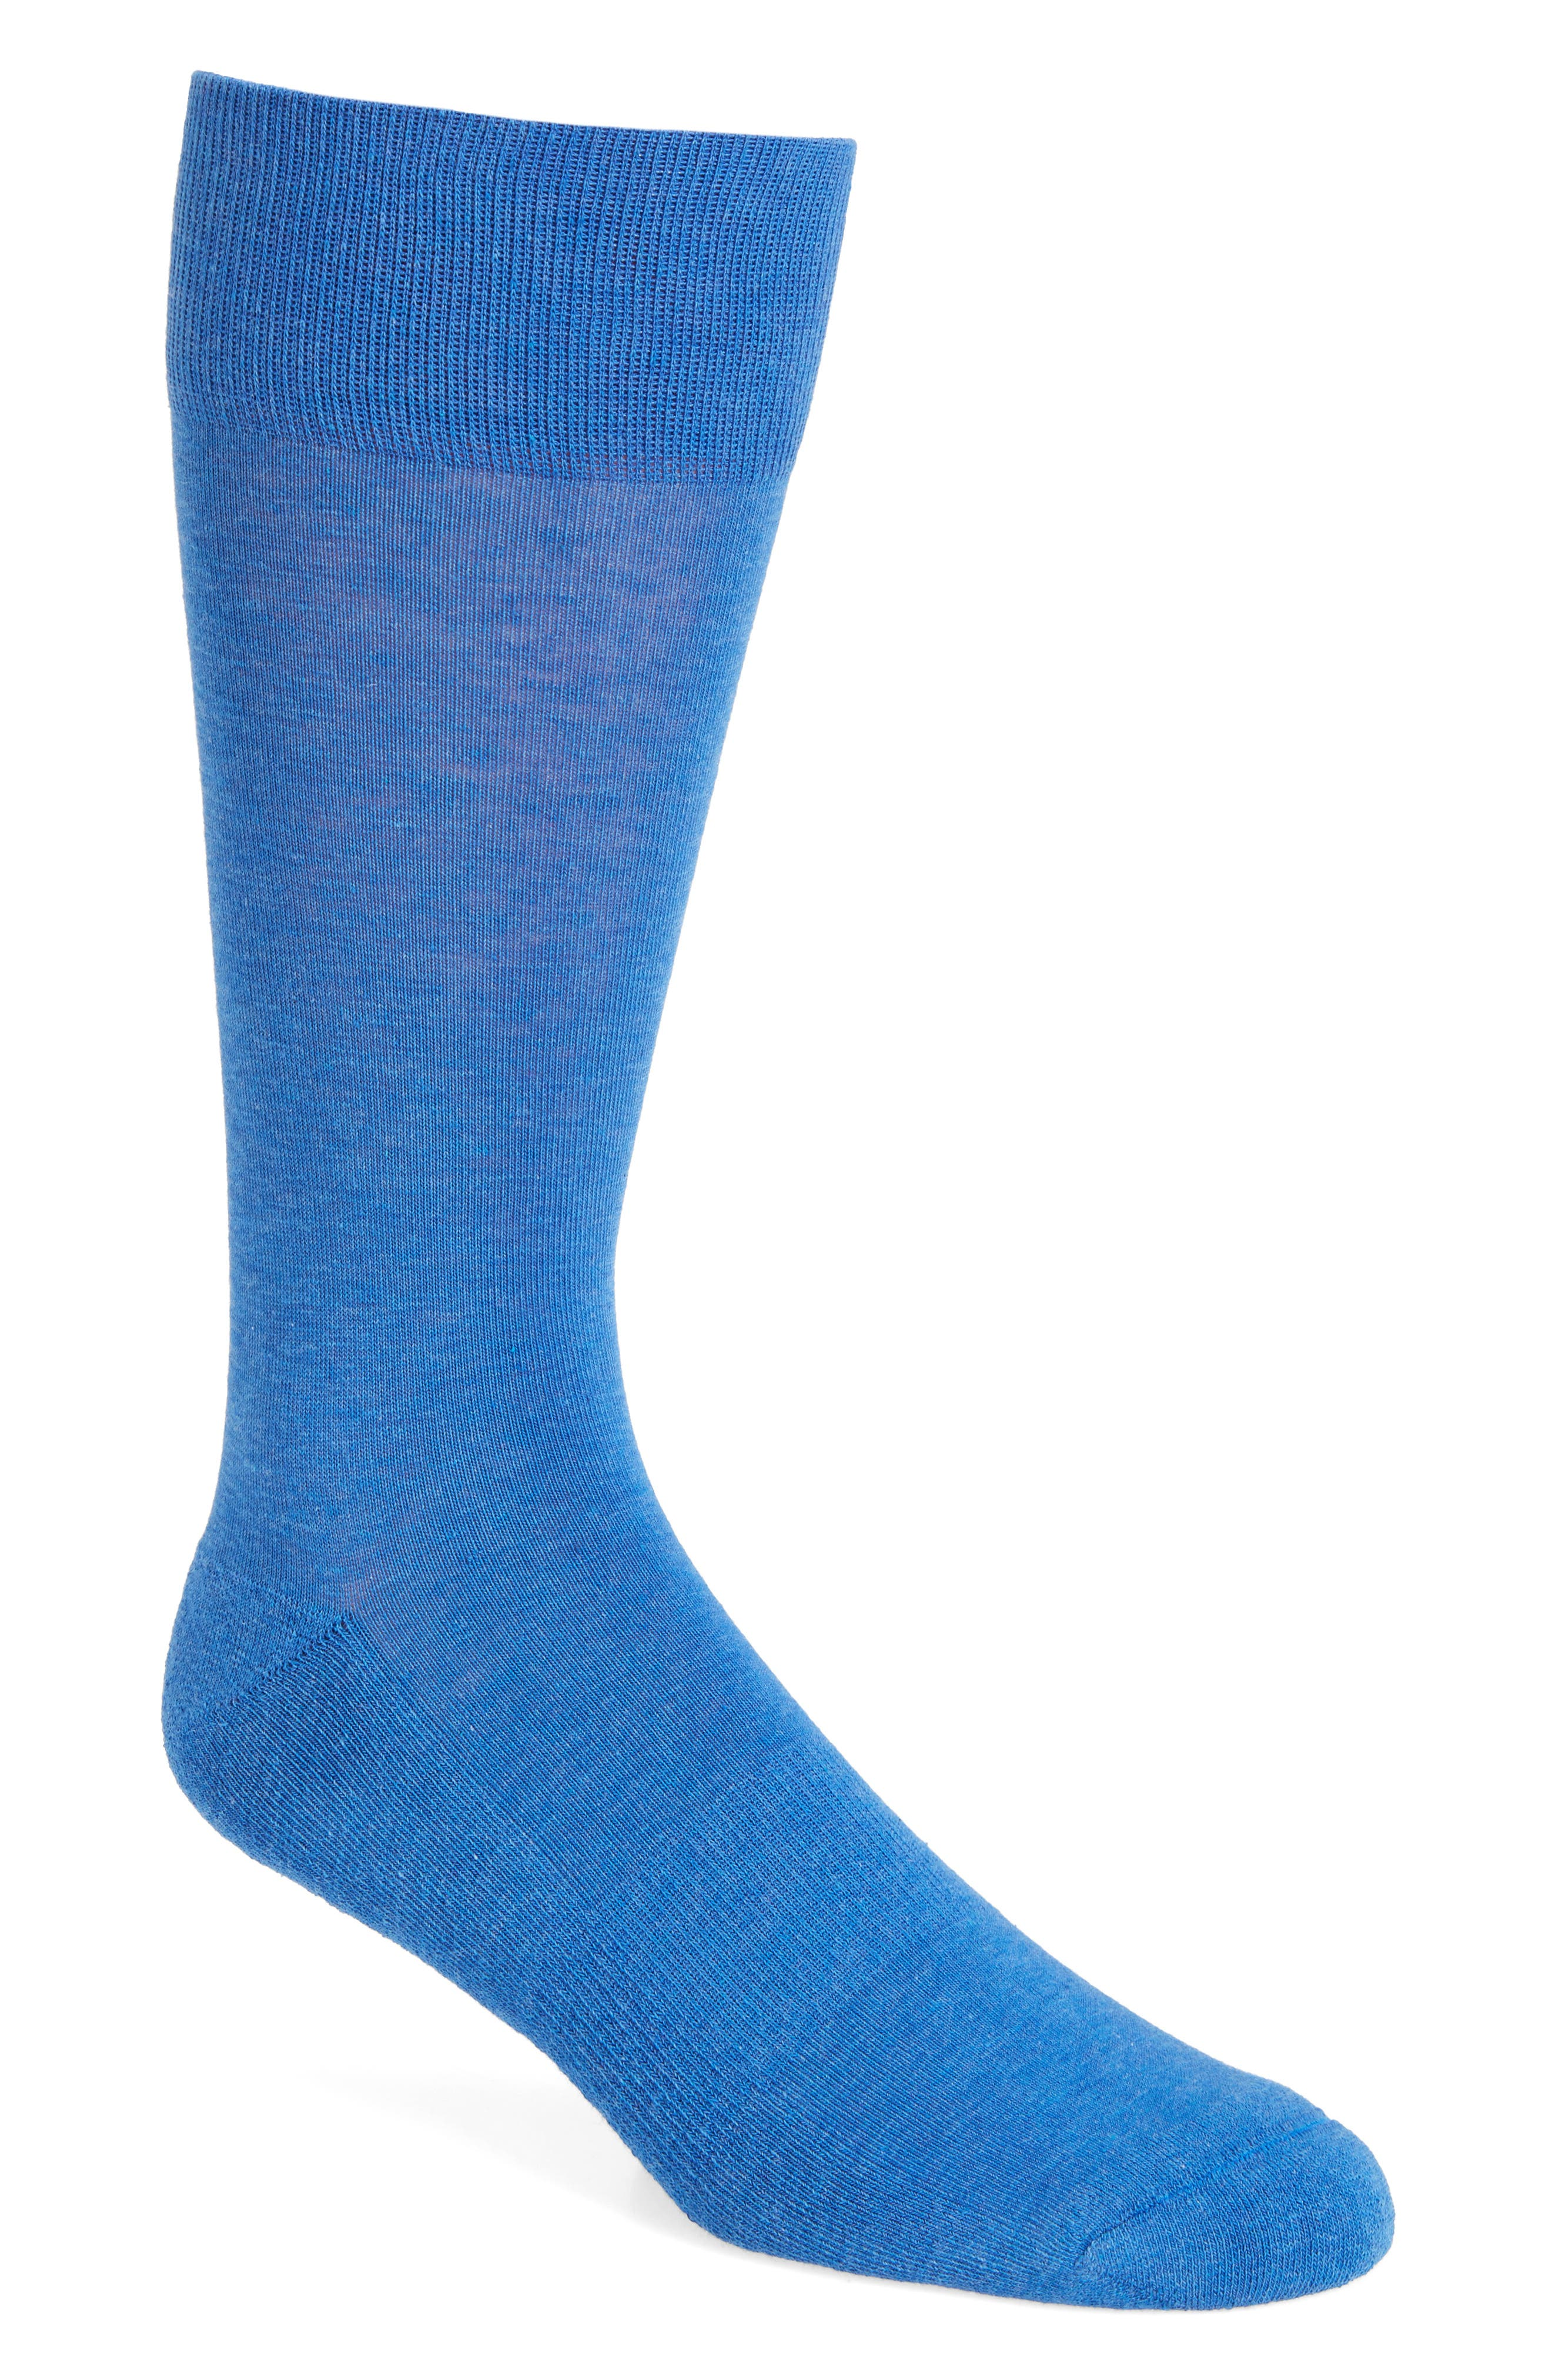 Nordstrom Mens Shop Cushion Foot Arch Support Socks